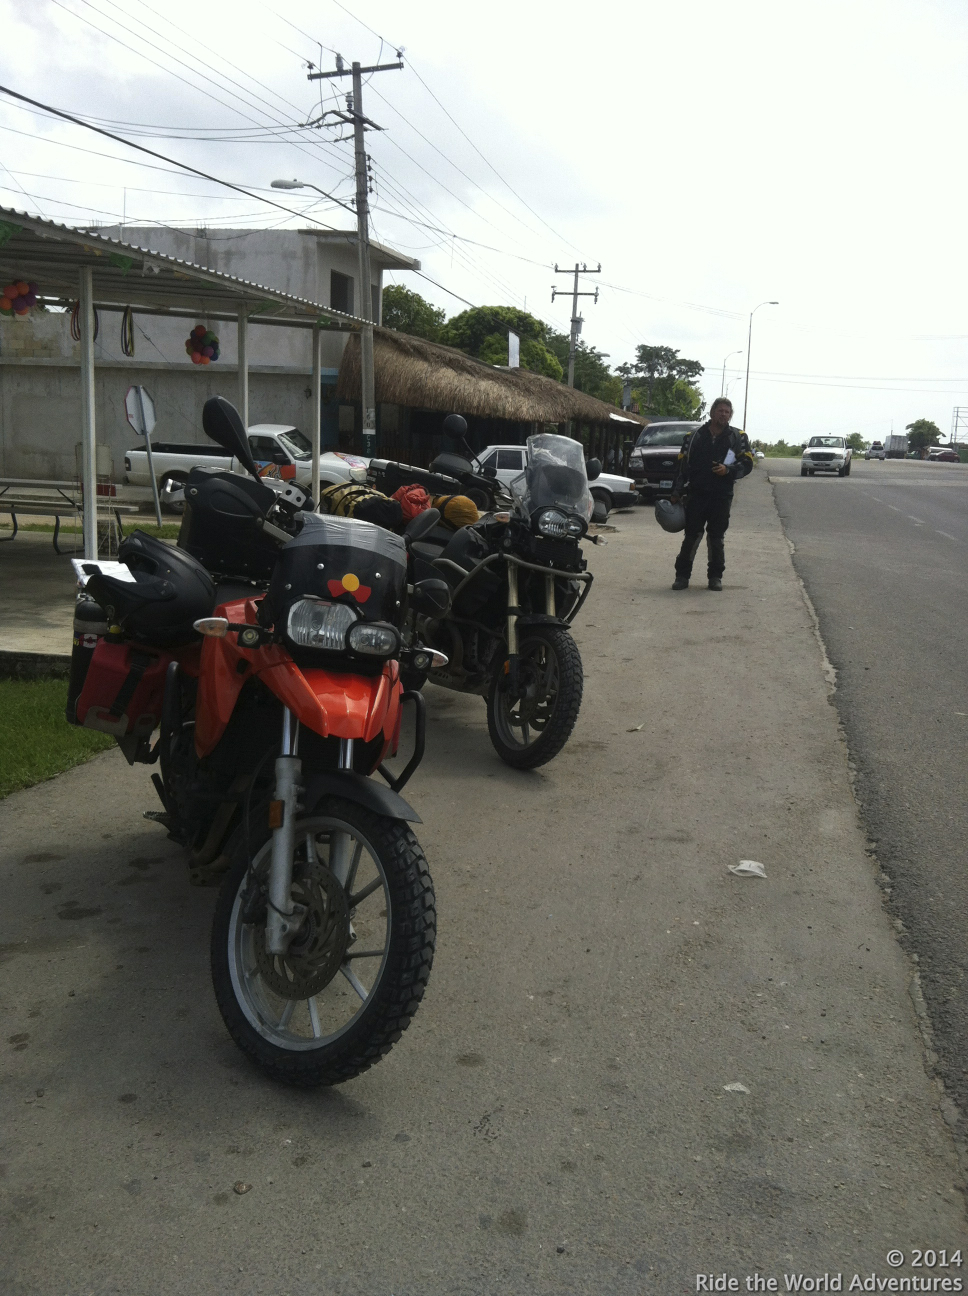 We decide to ride back into Bacalar to see if El Pejelagarto is open…we are in luck!